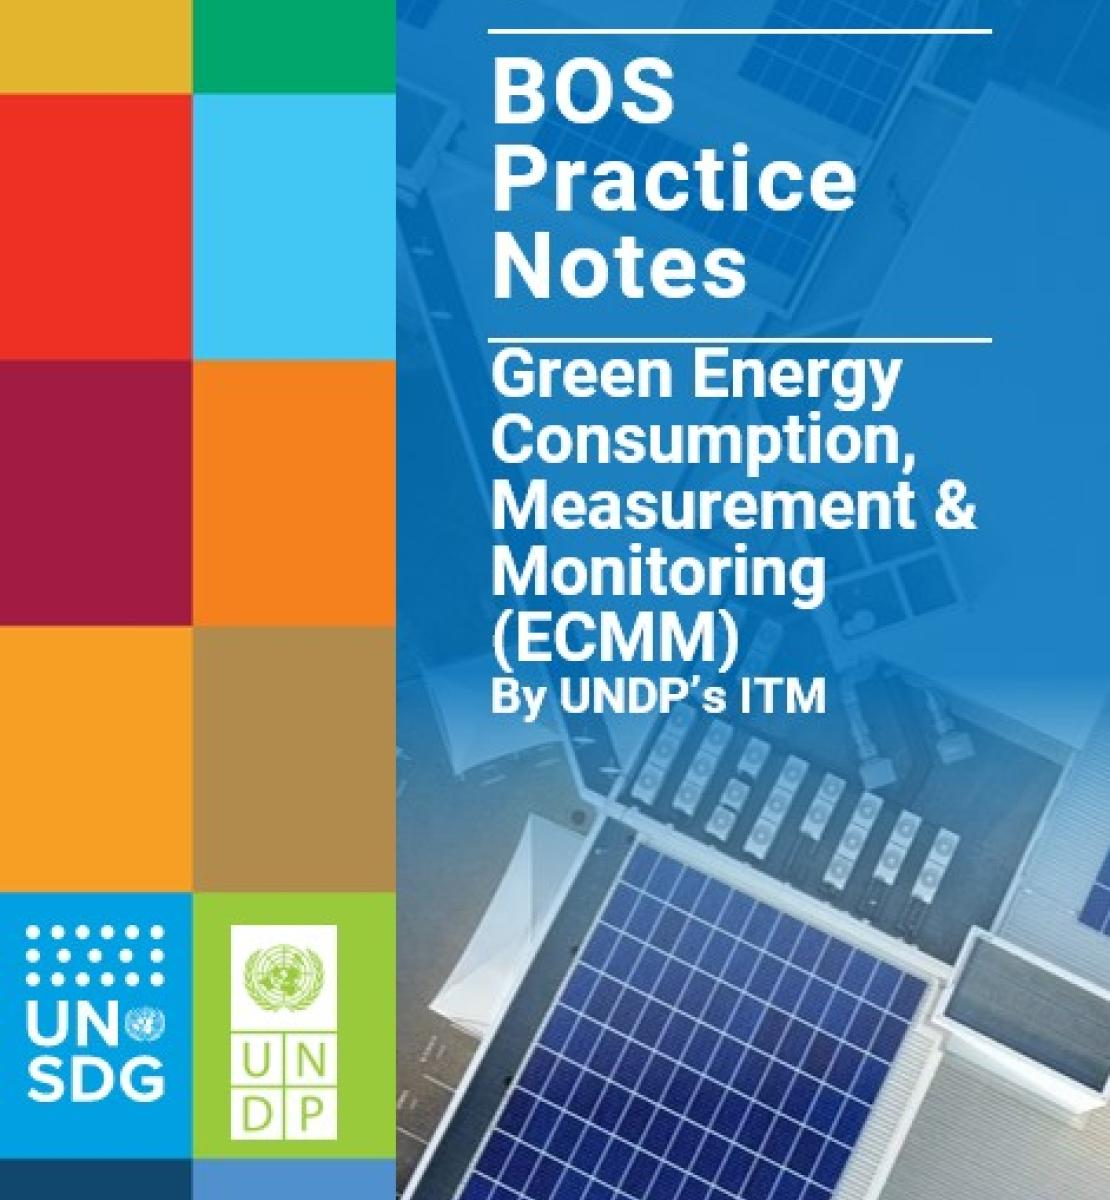 Aerial view of solar panels with SDG colored squares, logo of UNSDG and UNDP, and Title of the practice note.